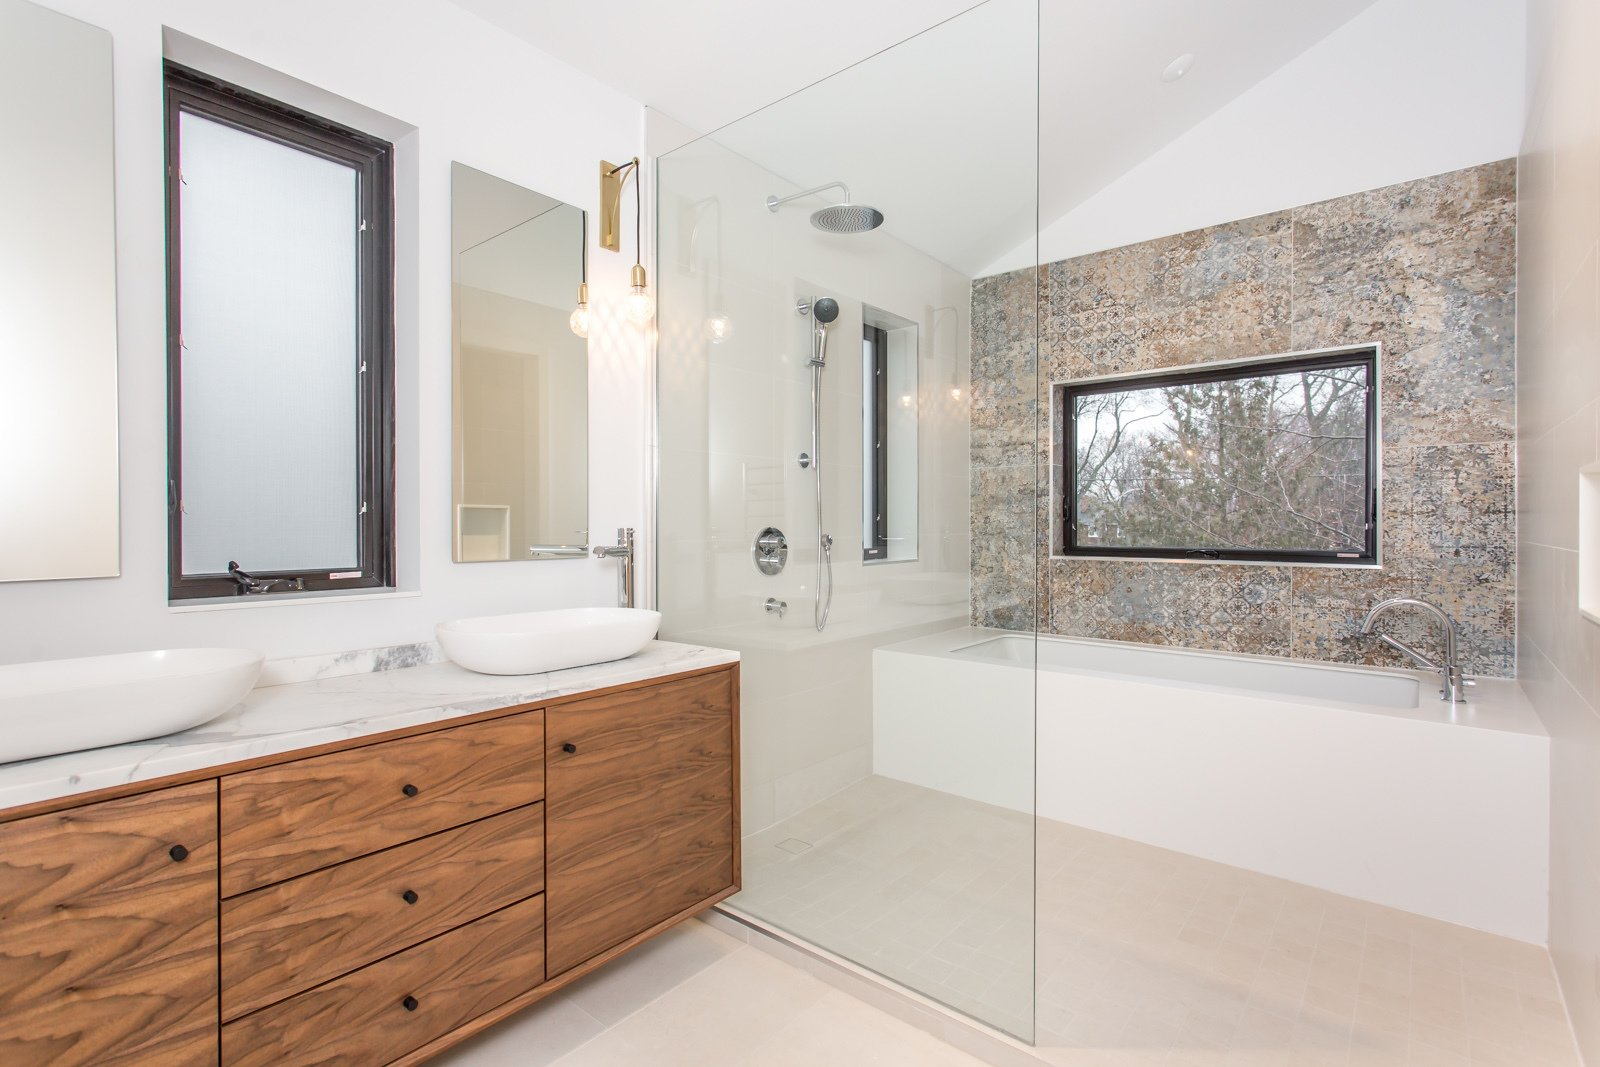 A master ensuite, with a bath/shower area, Vestige pattern tiles from Aparici, marble countertop and a walnut vanity.   Manor Road house by Nathalie Thorel